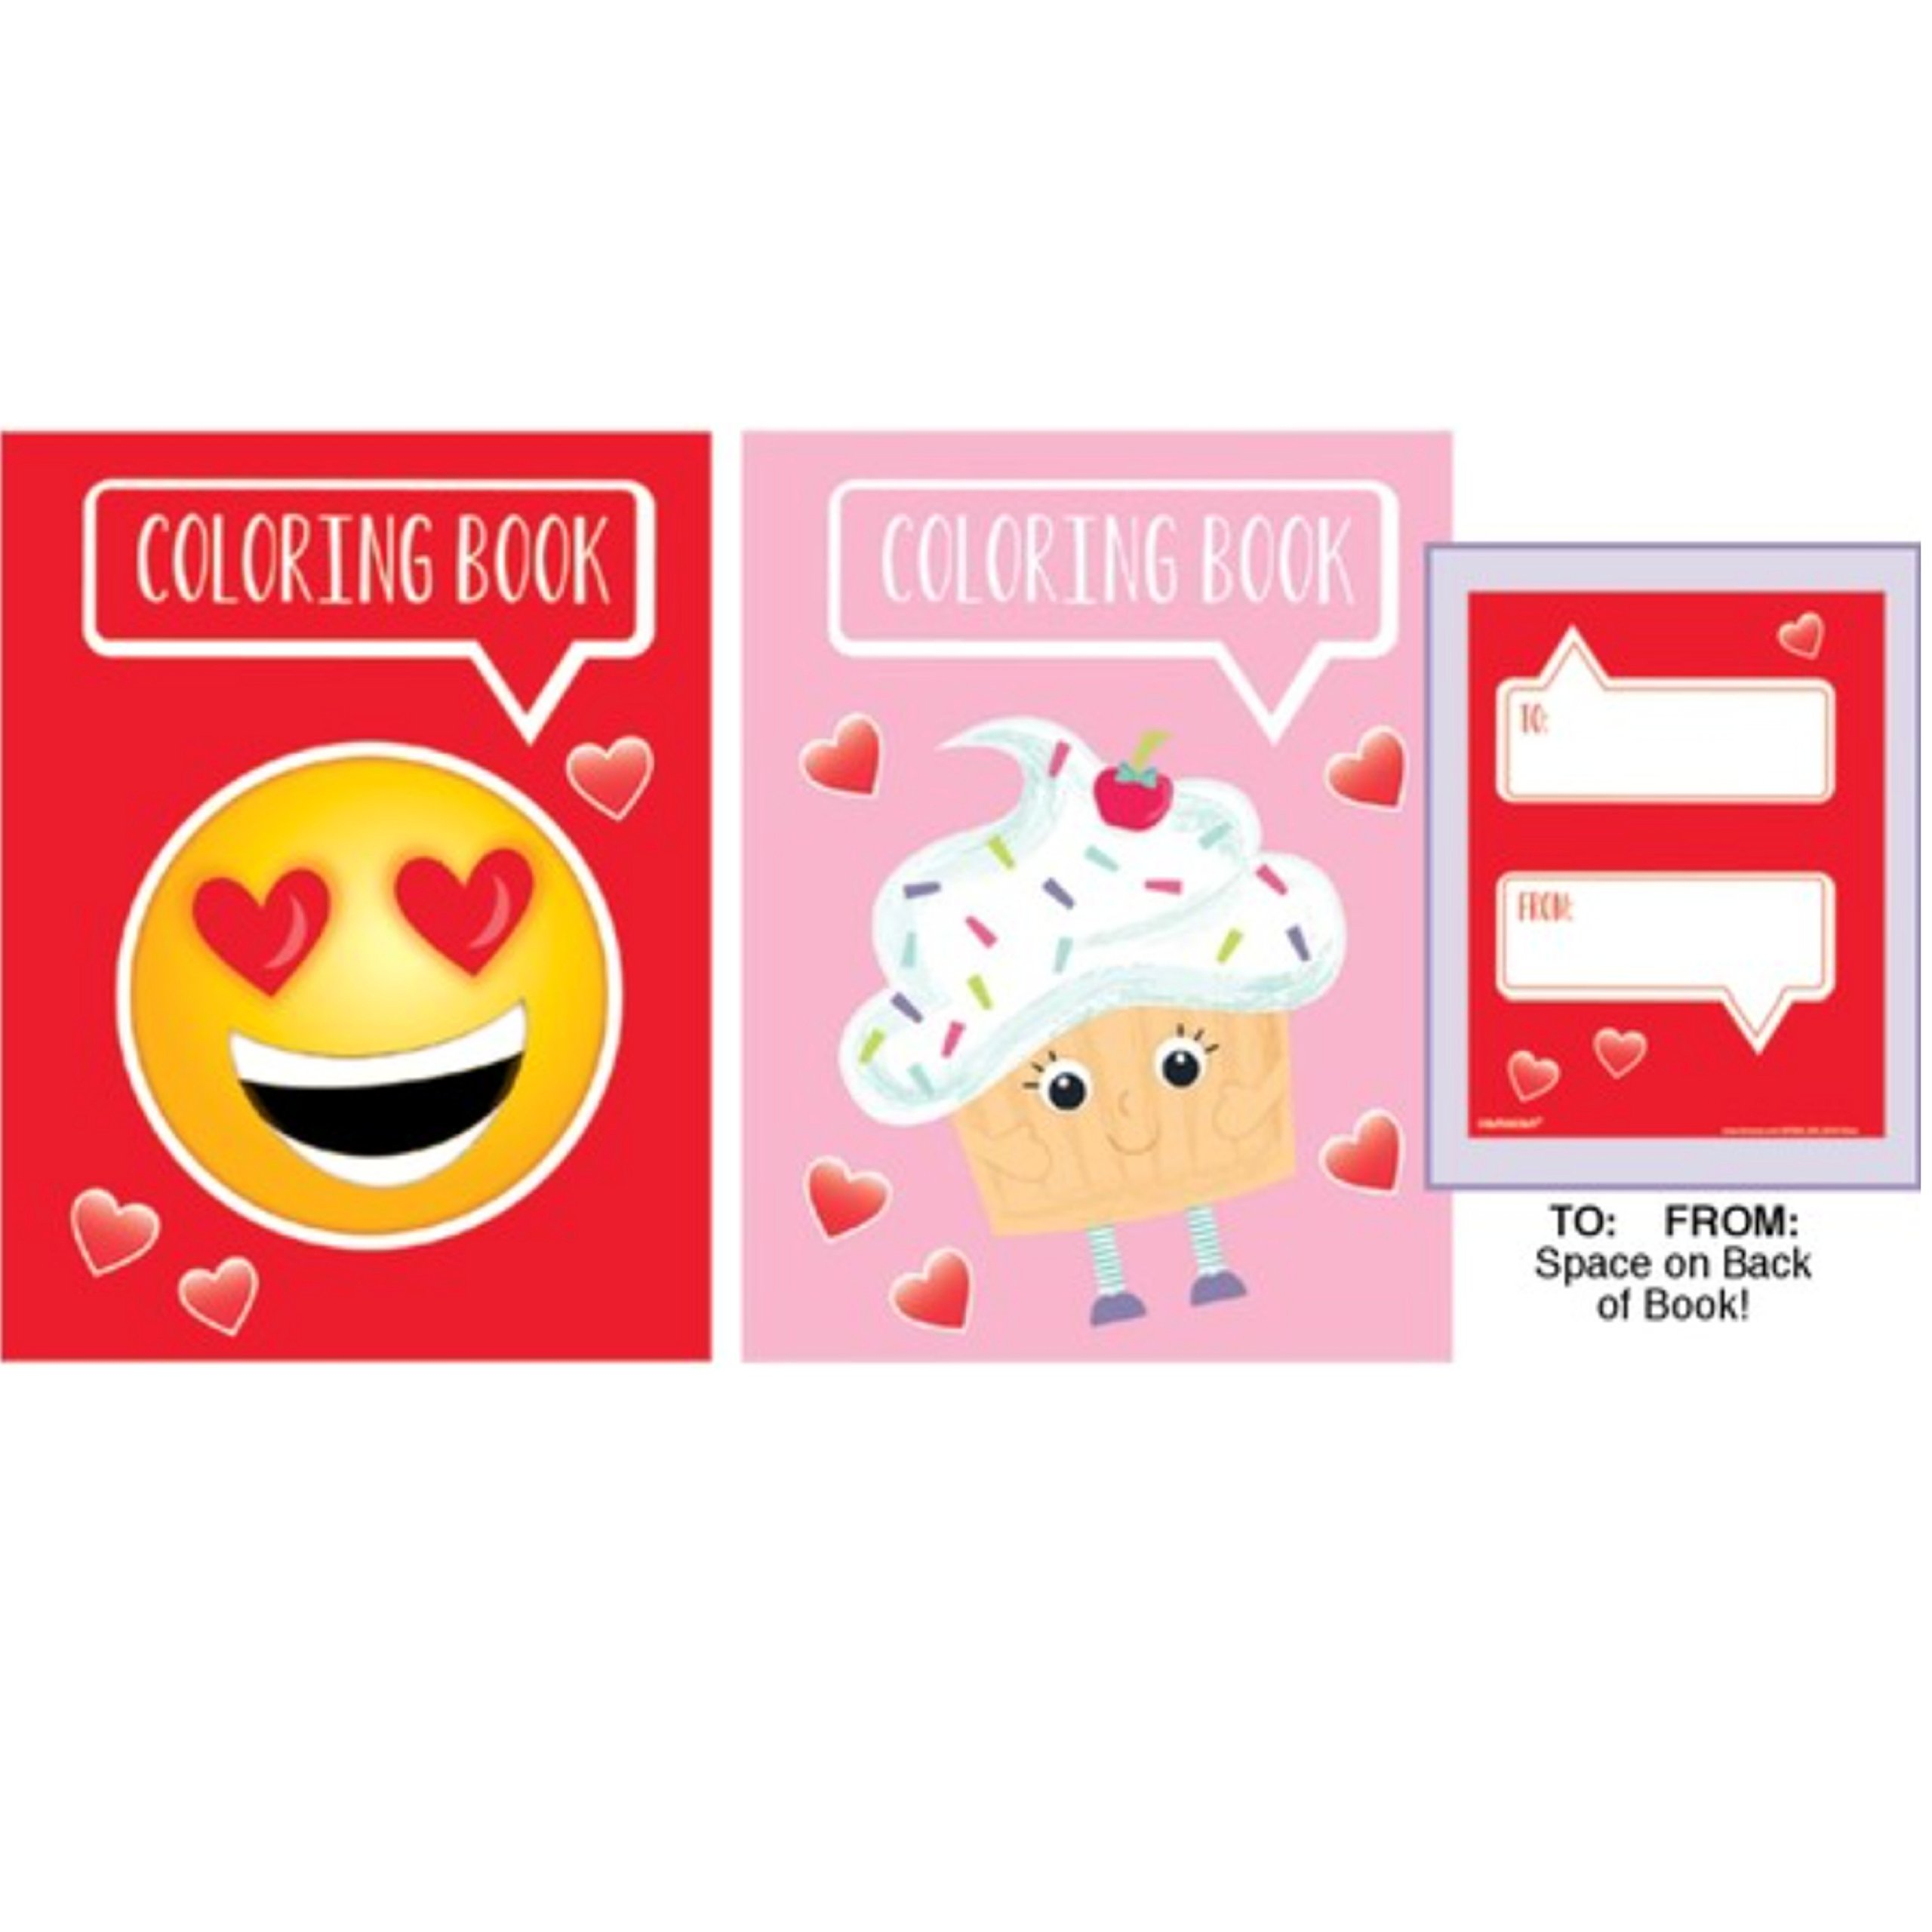 Valentines Emoticon Coloring Pages and Pencils, set of 48 pieces Party Favors by Custom Variety (Image #4)